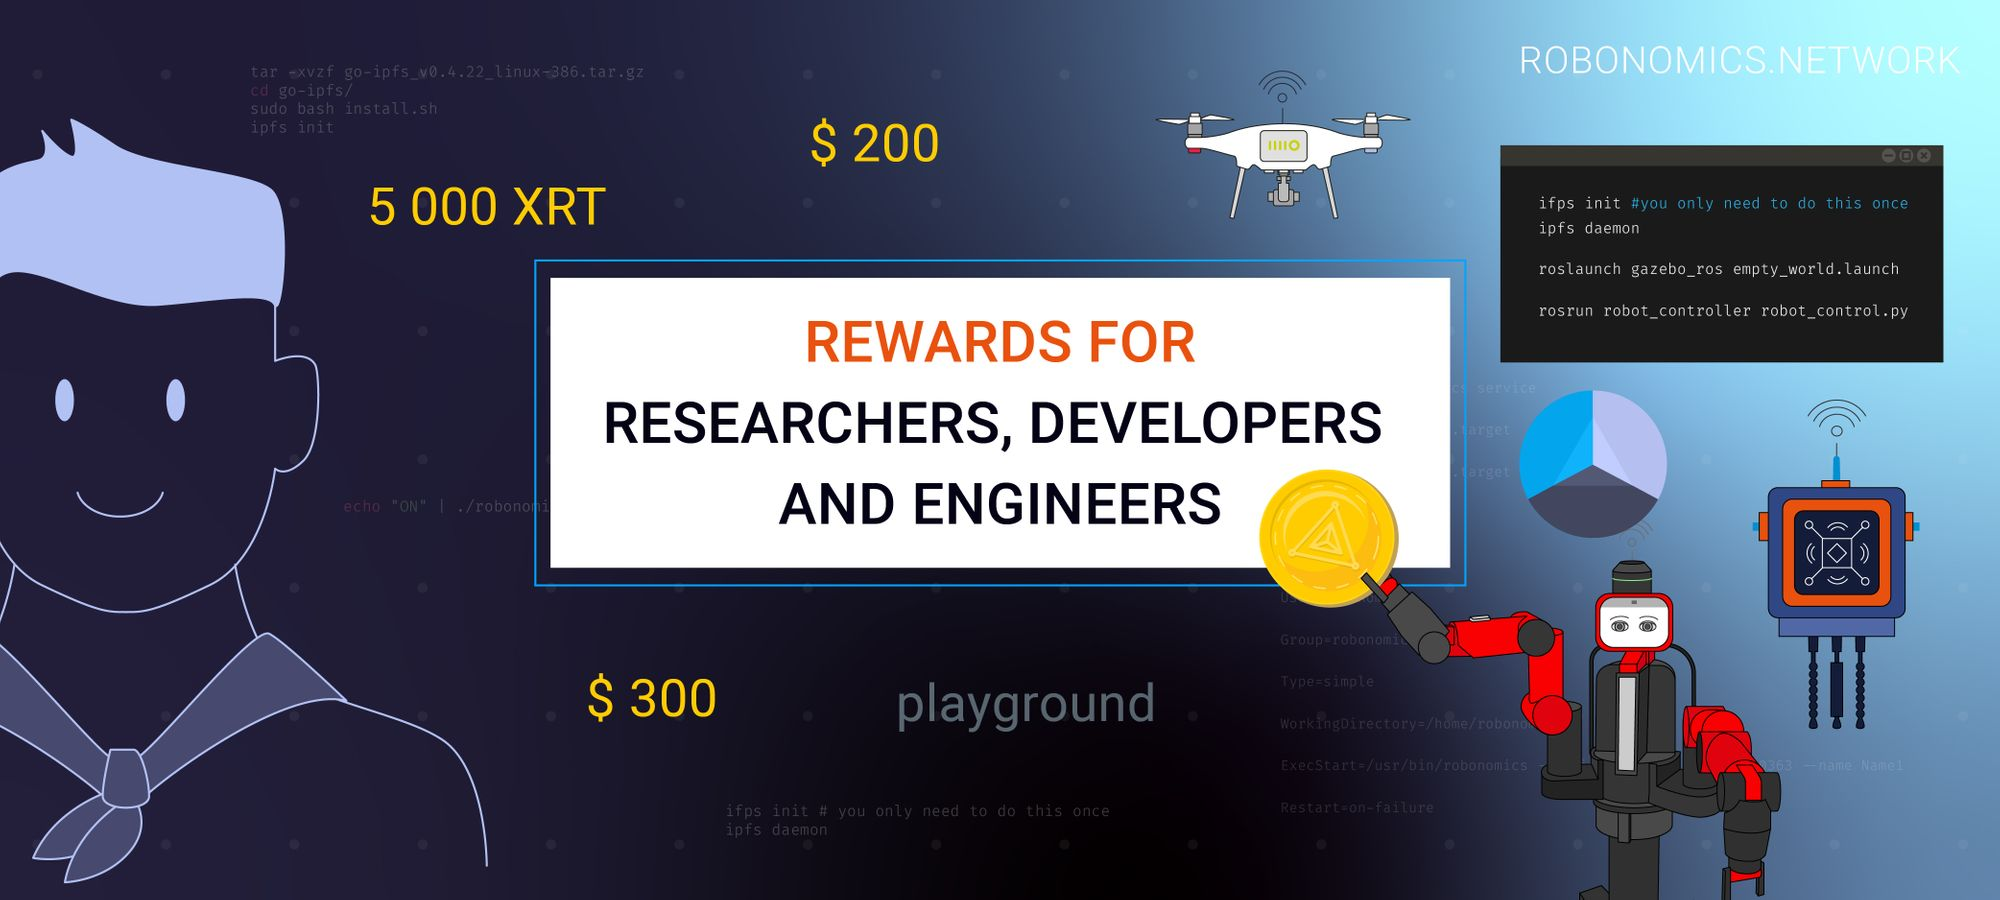 Rewards for researchers, developers and engineers